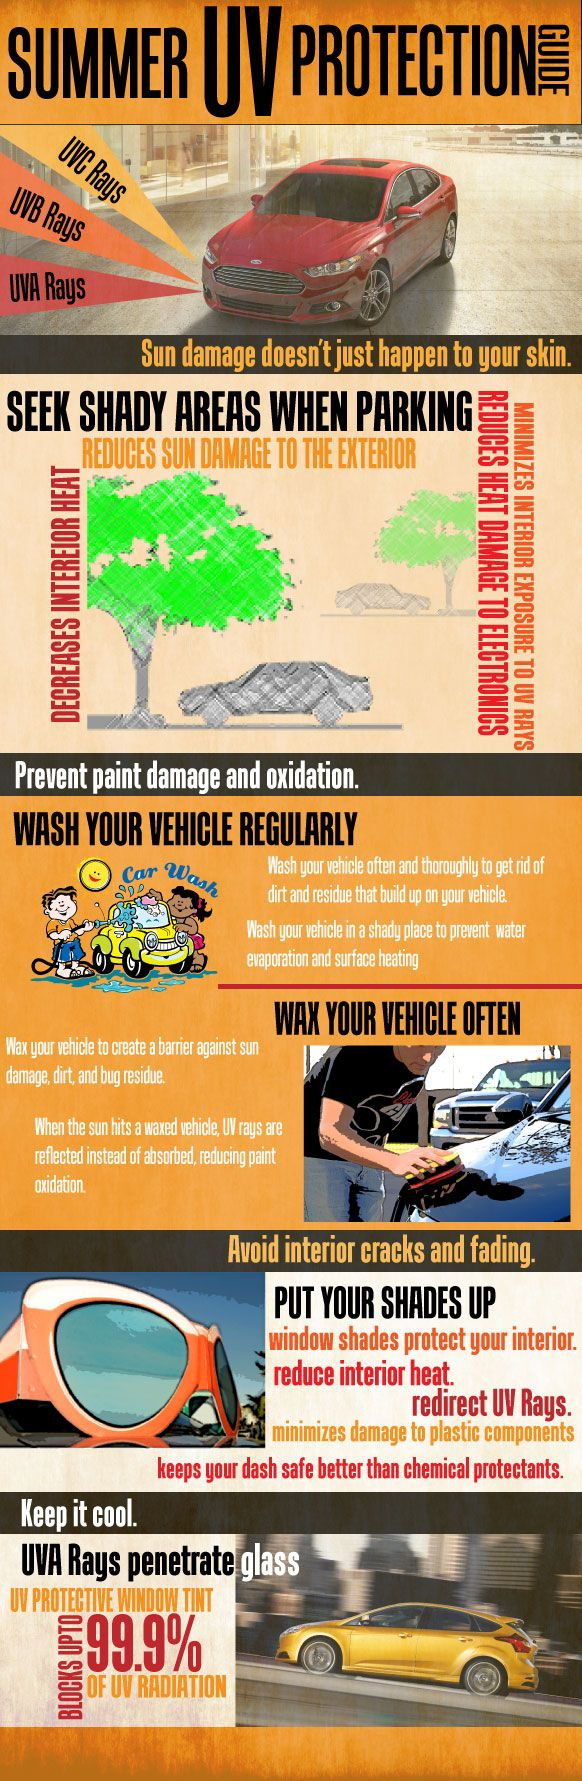 Infographic: These #summer car care tips will help keep your vehicle cool in the heat!  Kent's Muffler And Auto Inc  250 West 9210 South Sandy, UT 84070  Phone: 801-816-1600